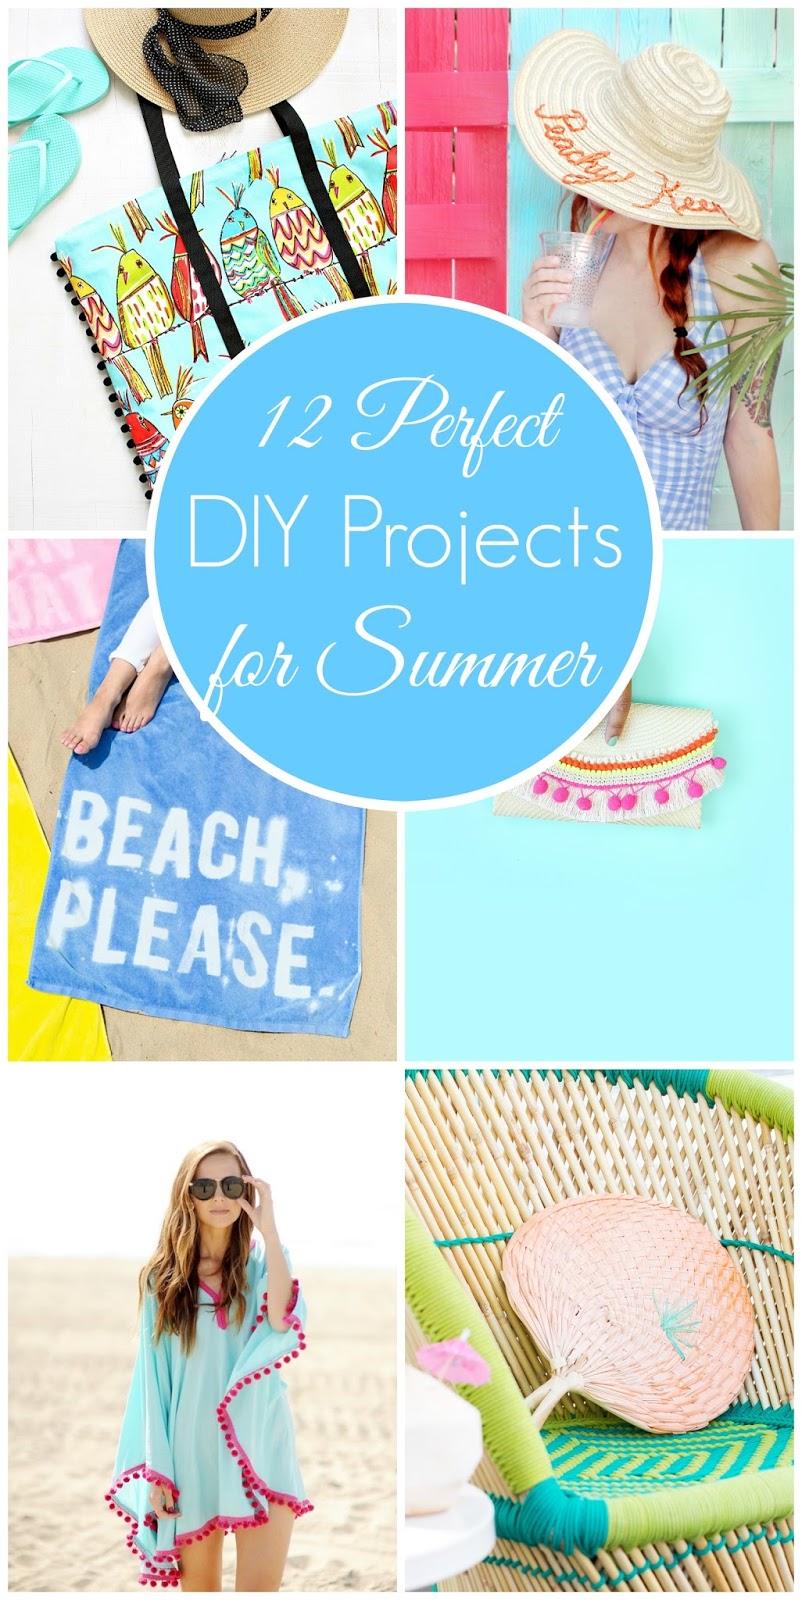 12 Perfect DIY Projects for Summer